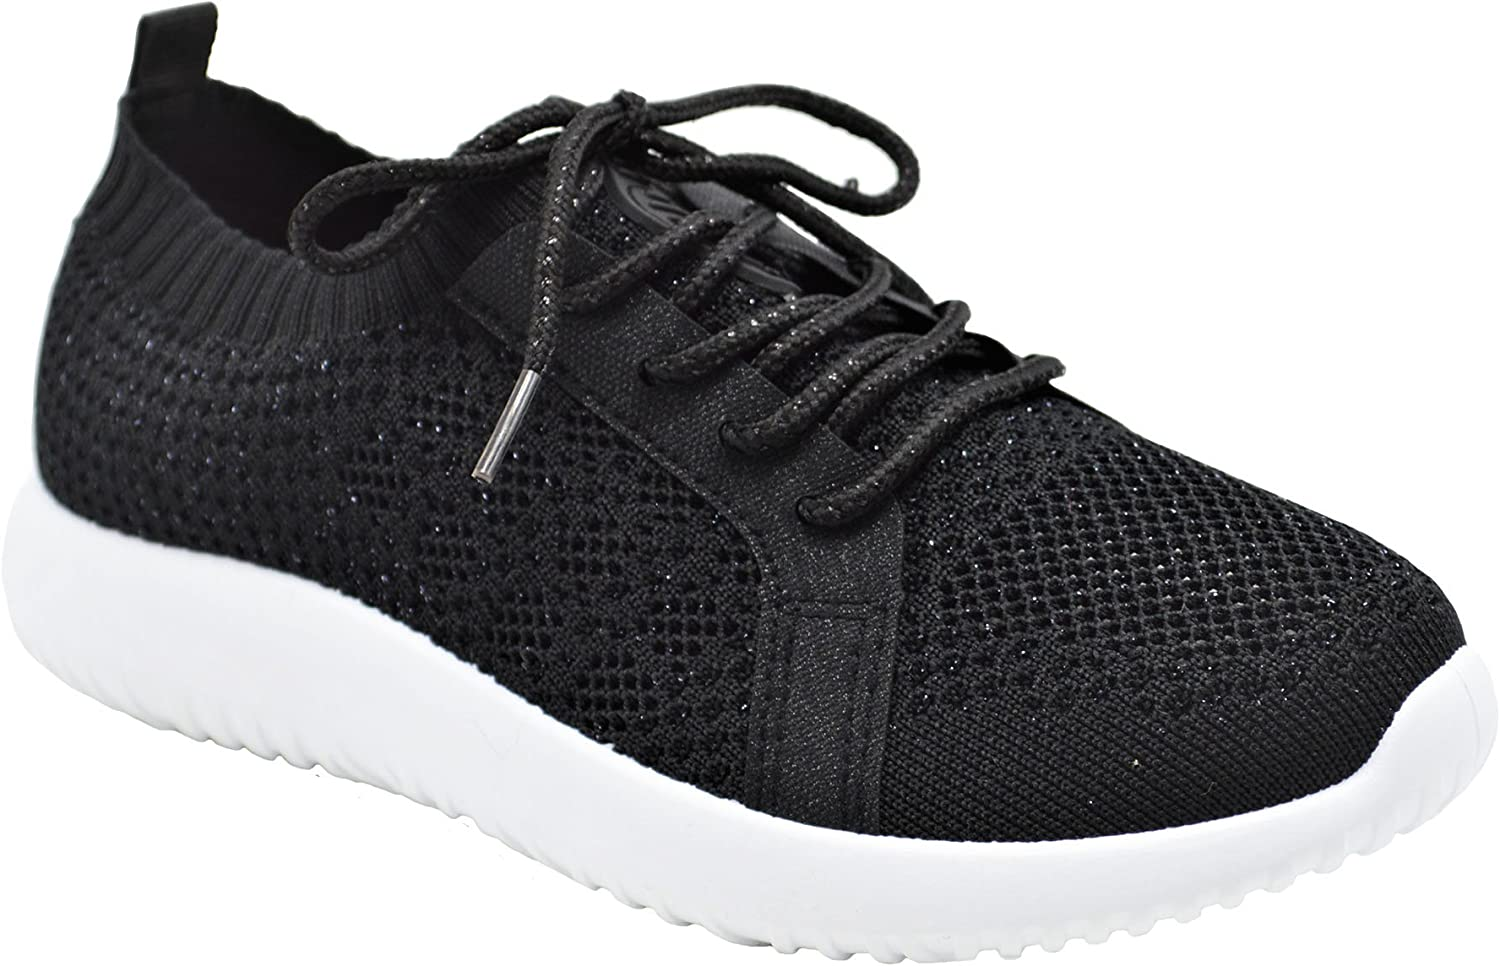 golden Road G.N.D Women's Lightweight Casual Walking Athletic shoes Breathable Mesh Running Slip-On Sneakers  1106